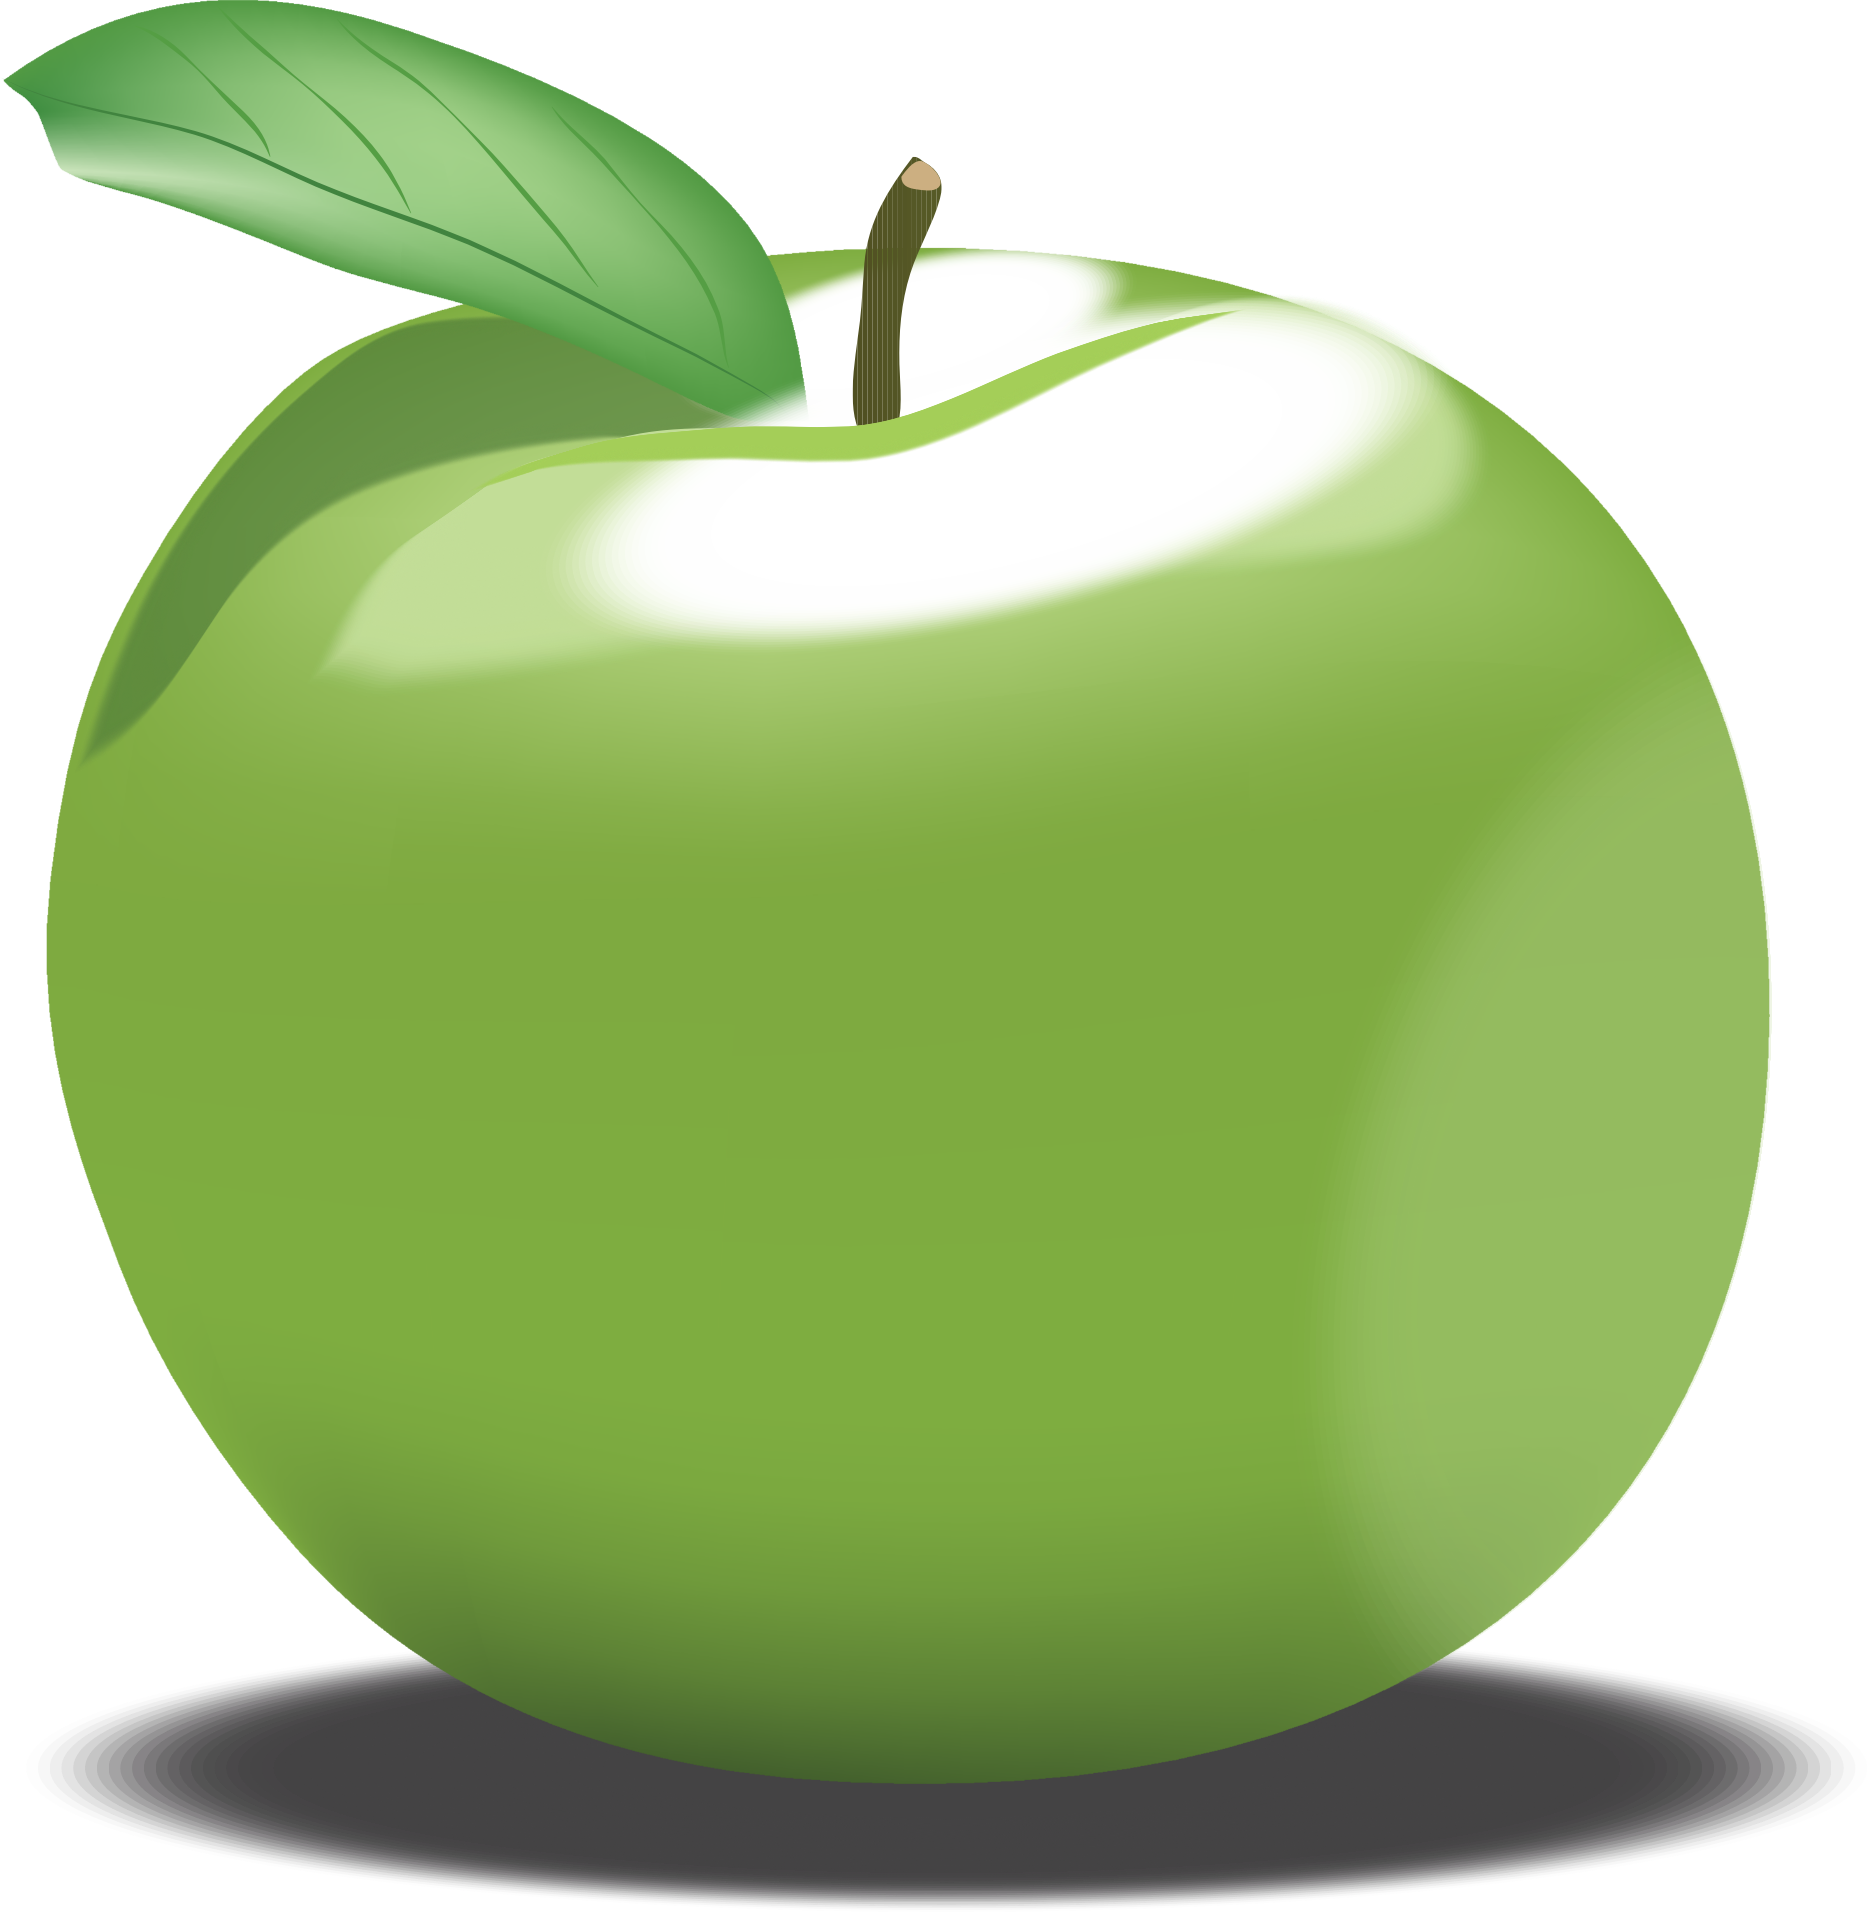 Clipart of green apple.